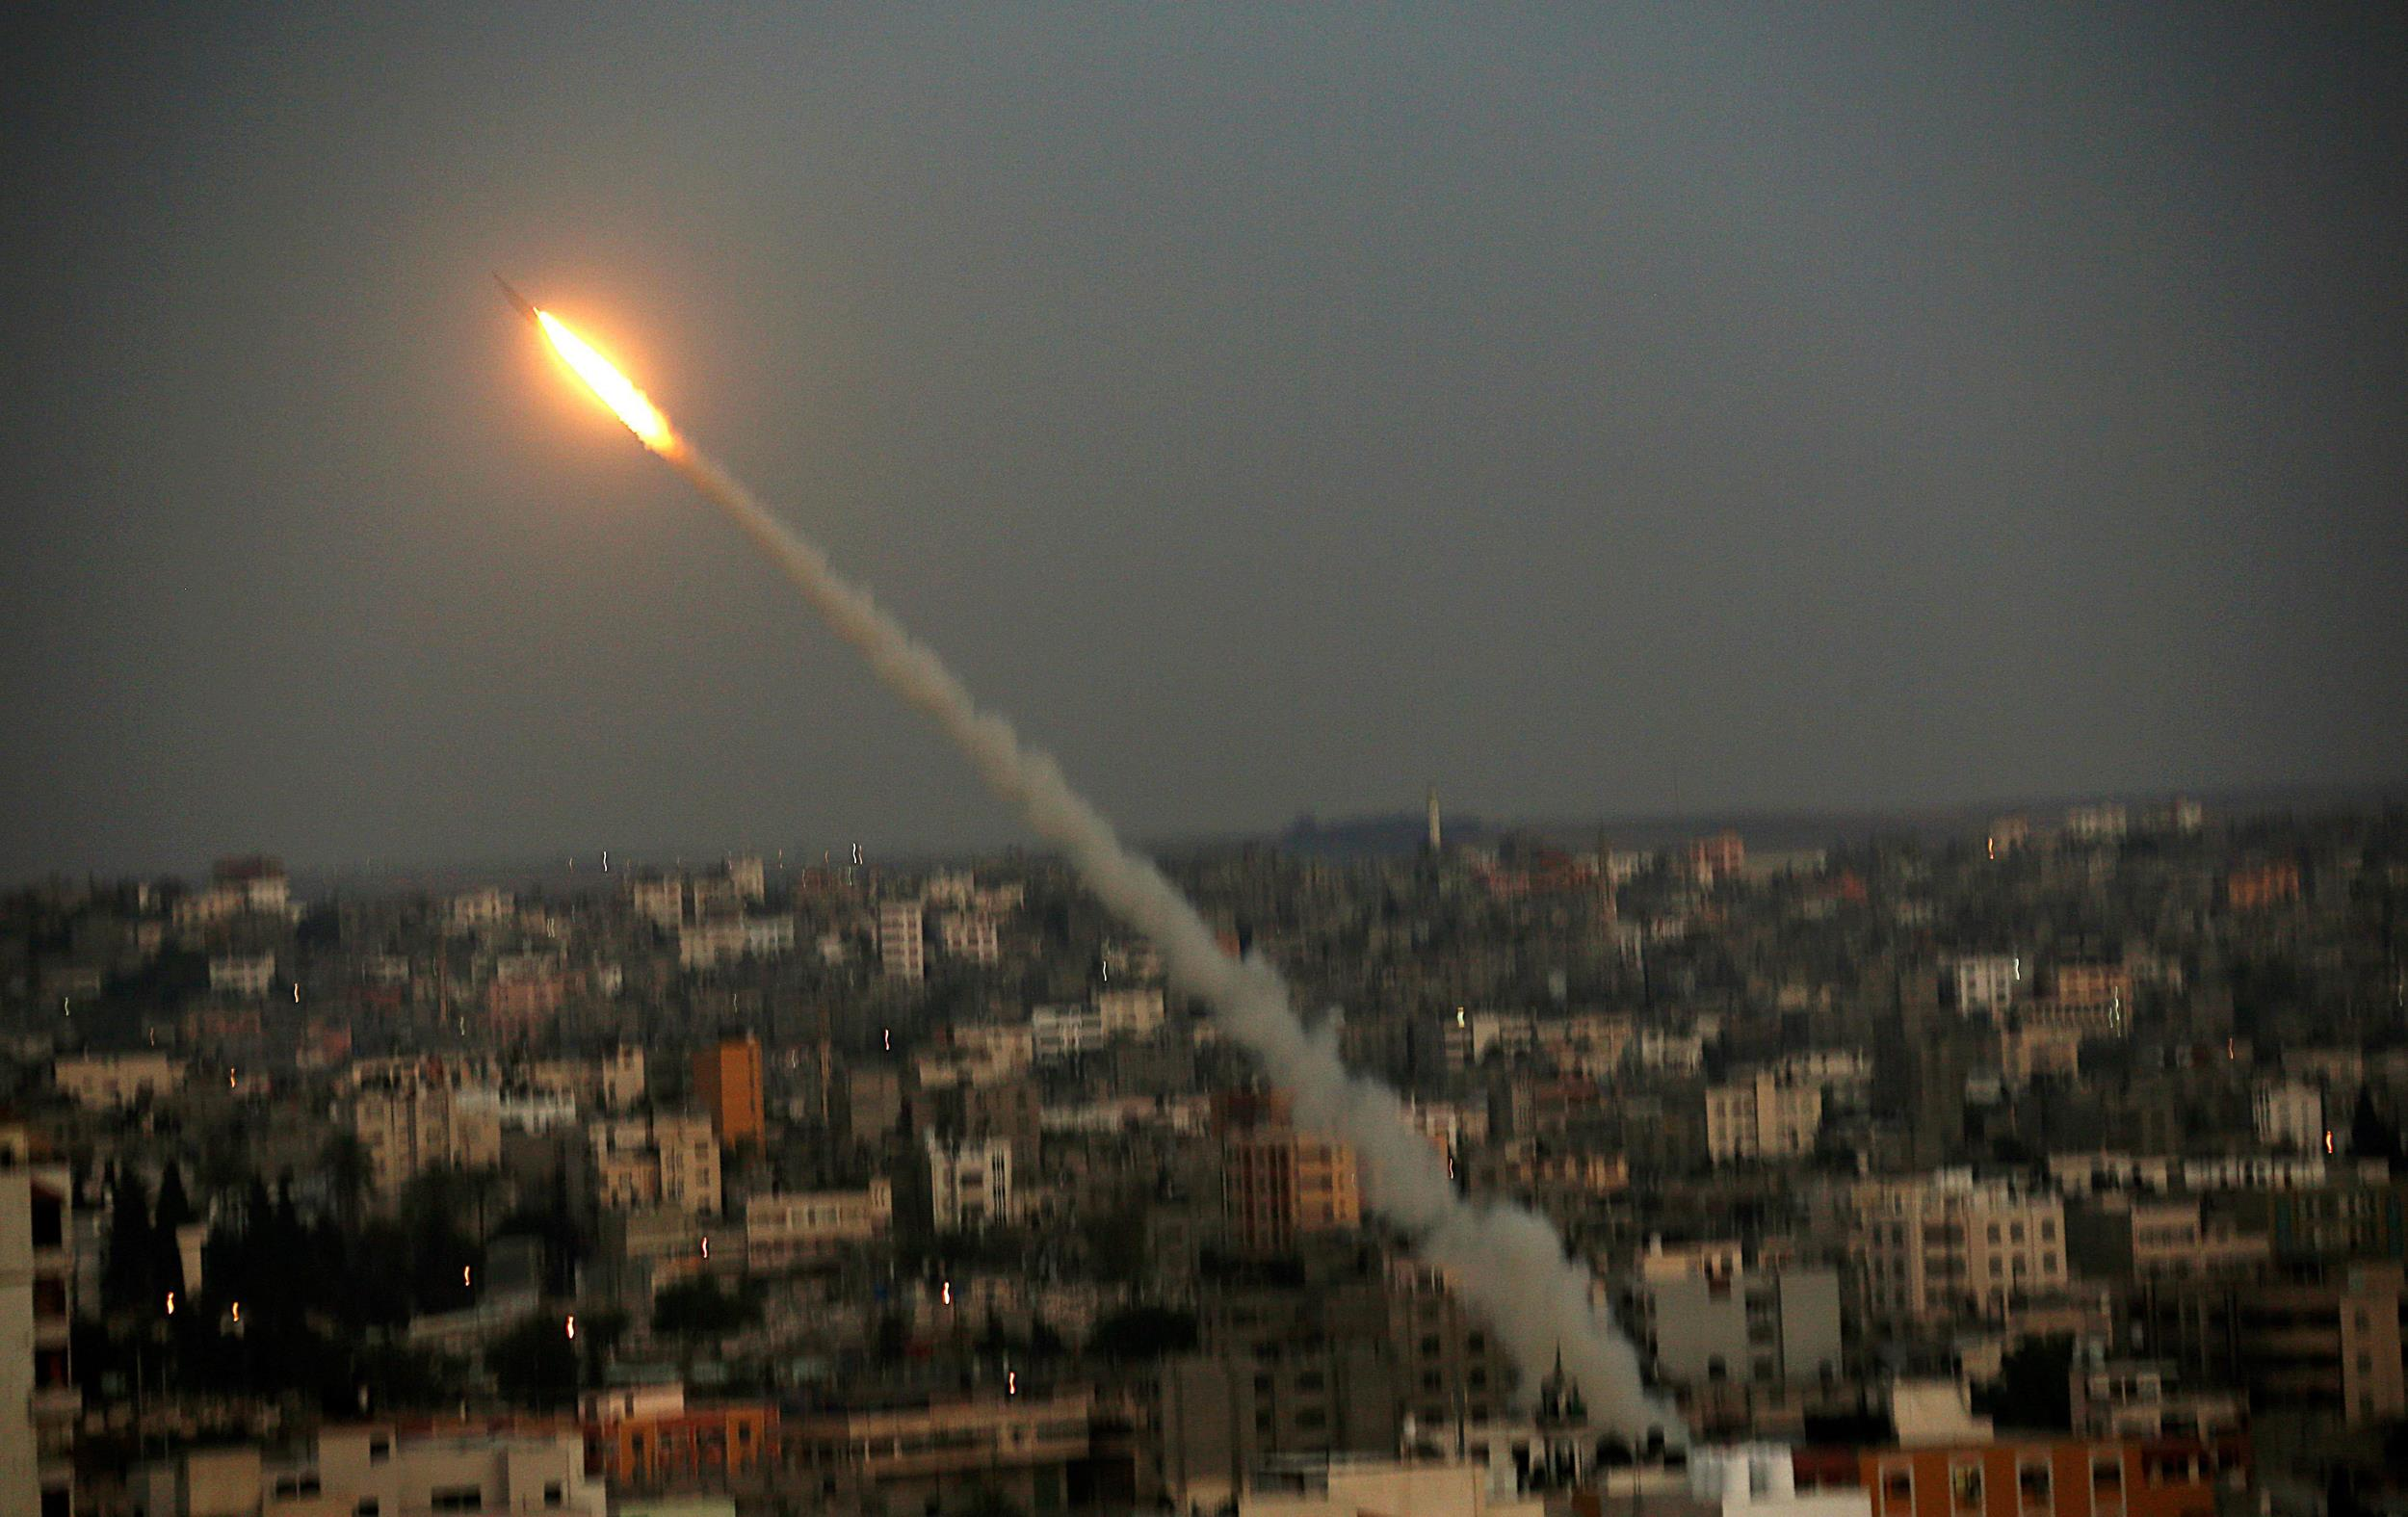 Image: M75 rocket launched from Gaza strip into Israel